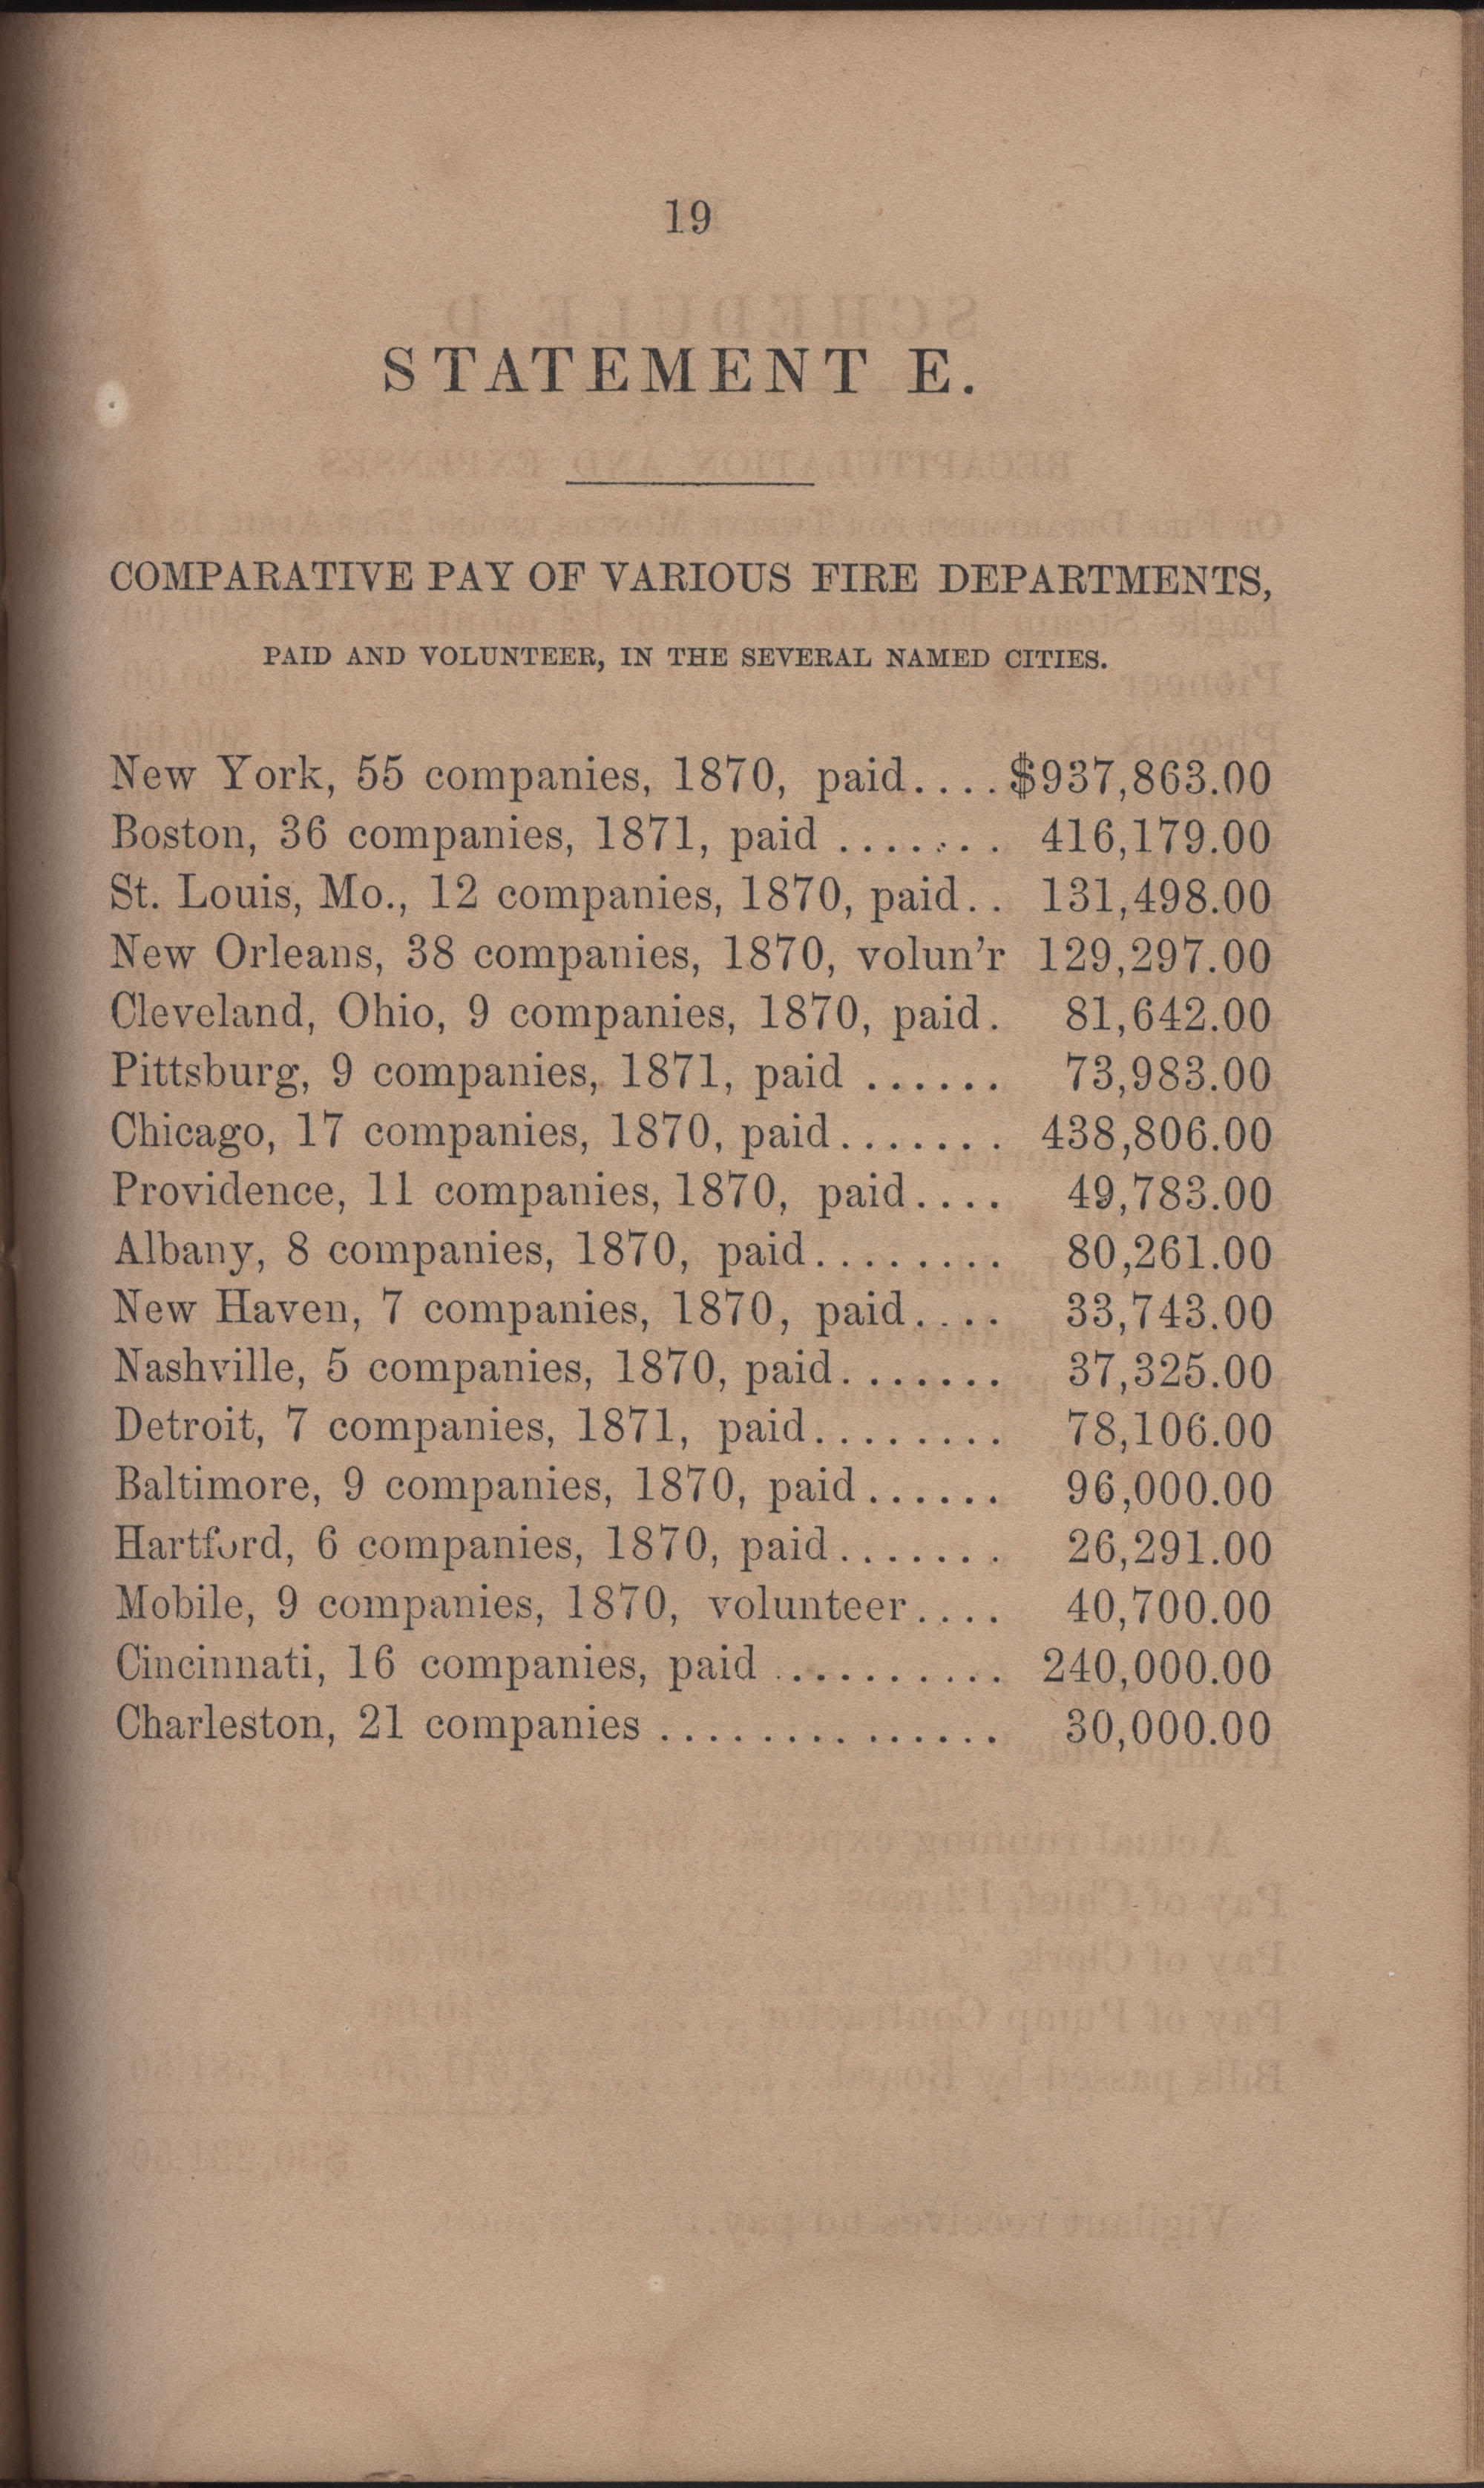 Annual Report of the Chief of the Fire Department of the City of Charleston, page 366